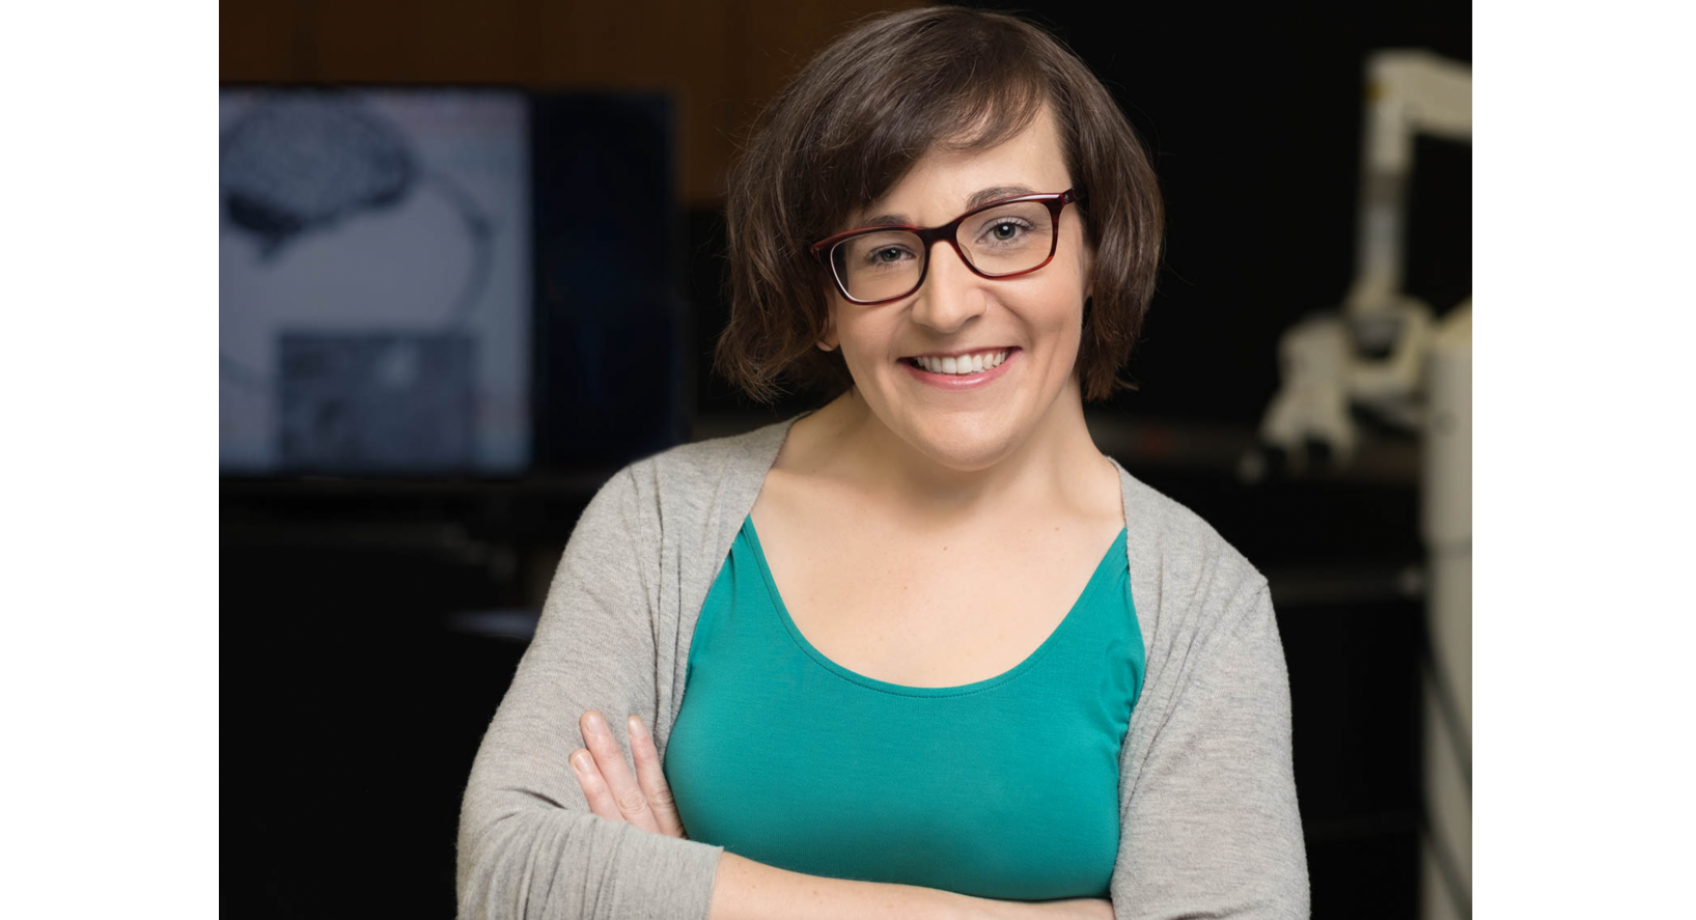 Assistant professor Amy Orsborn awarded 2019 L'Oreal USA